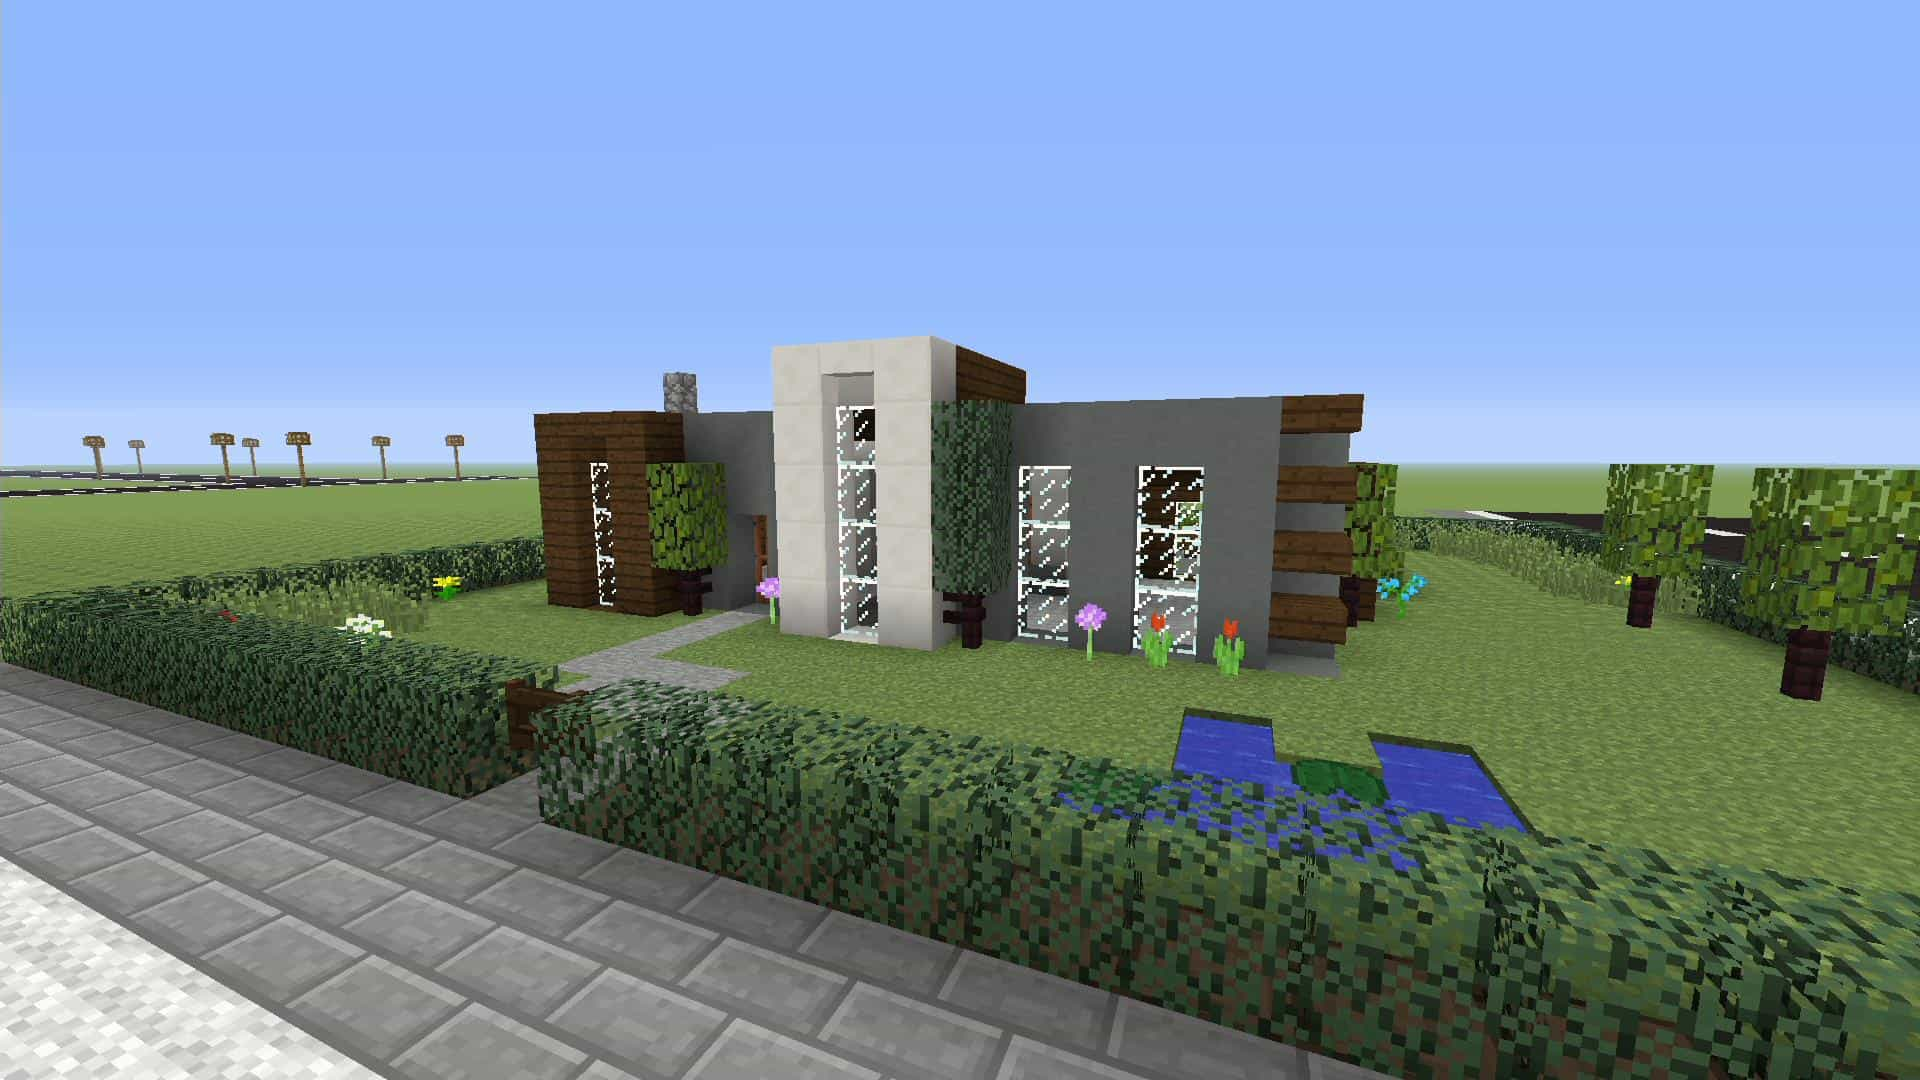 How to build a simple modern house minecraft house design for How to build a modern house